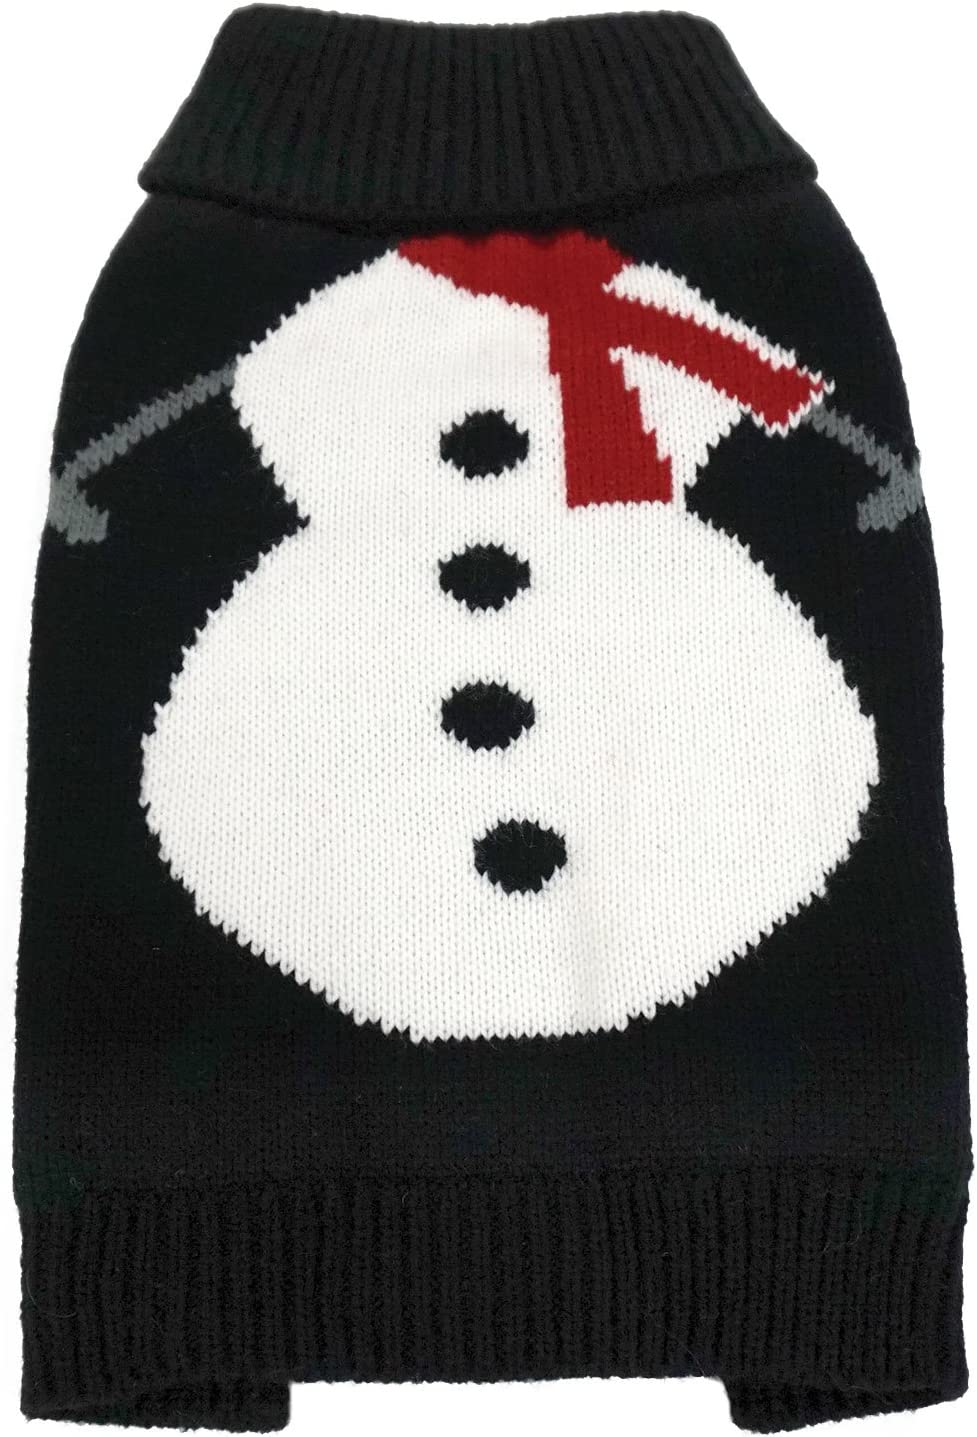 FouFou Dog 62590 Snowman Ugly X-Smal Sweater 70% OFF Outlet Christmas famous Dogs for